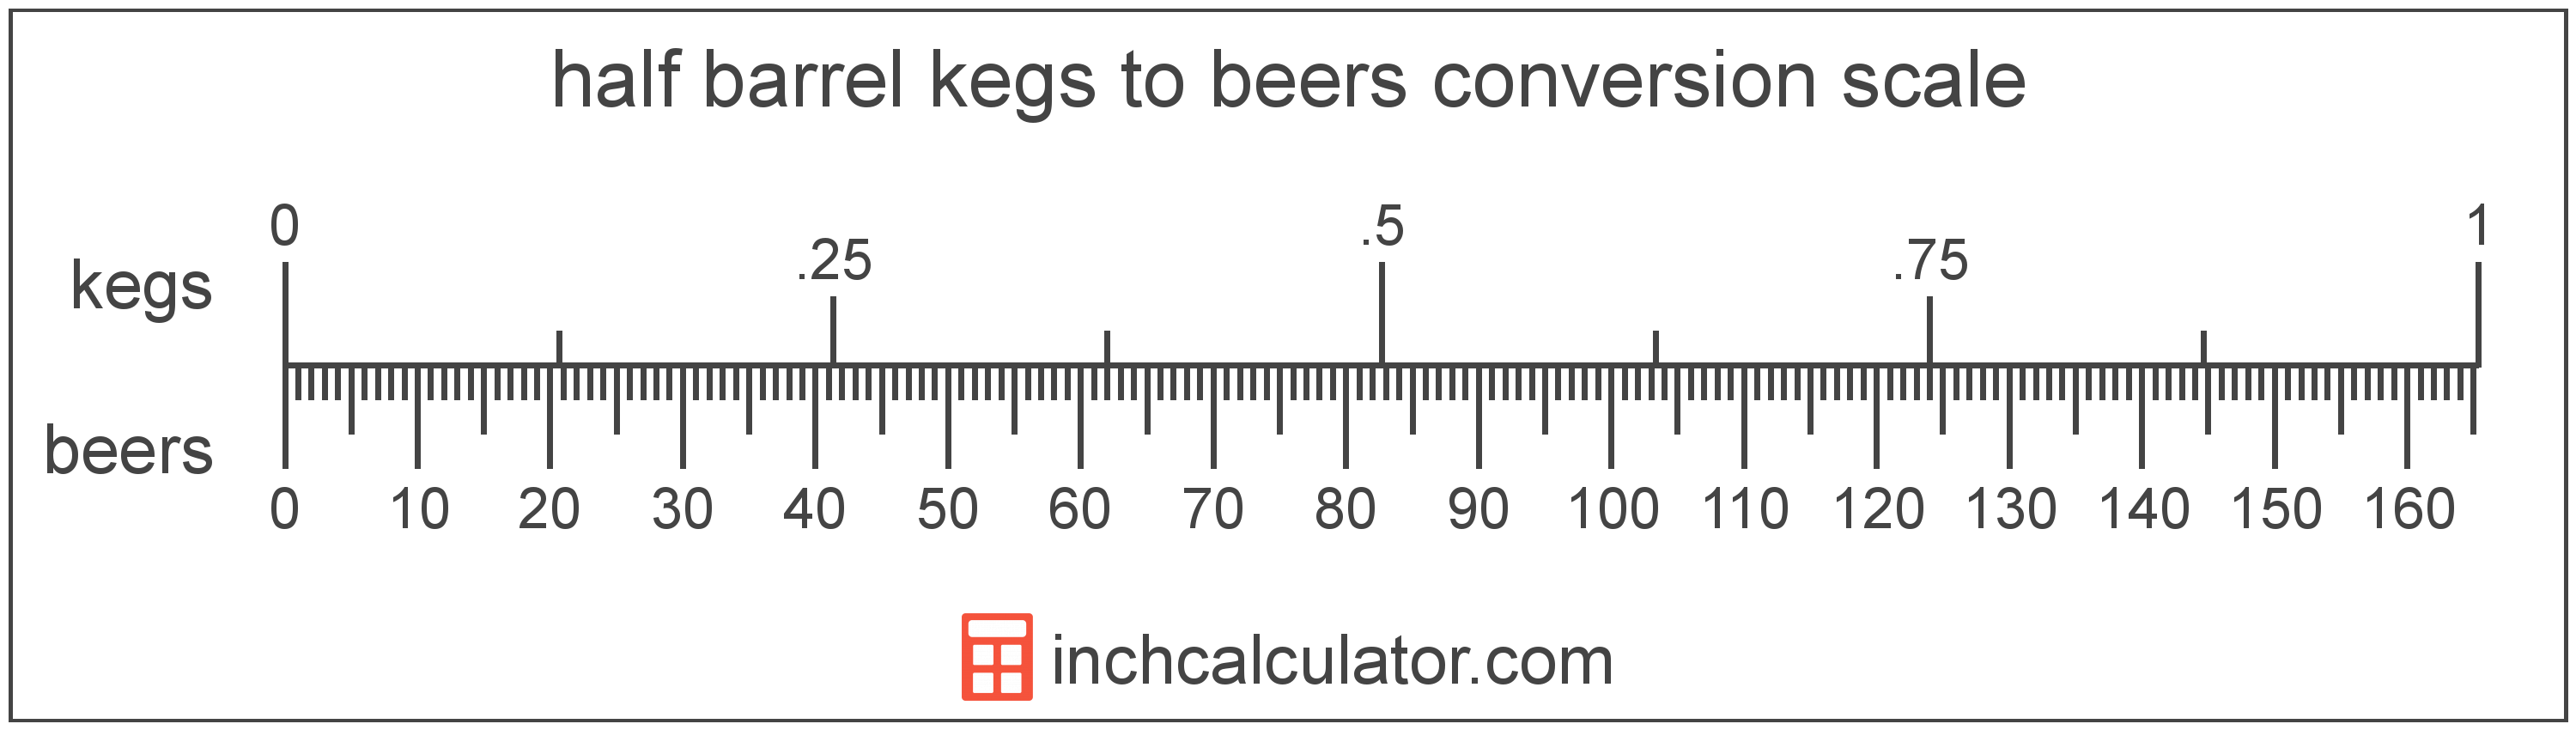 conversion scale showing beers and equivalent half barrel kegs beer volume values